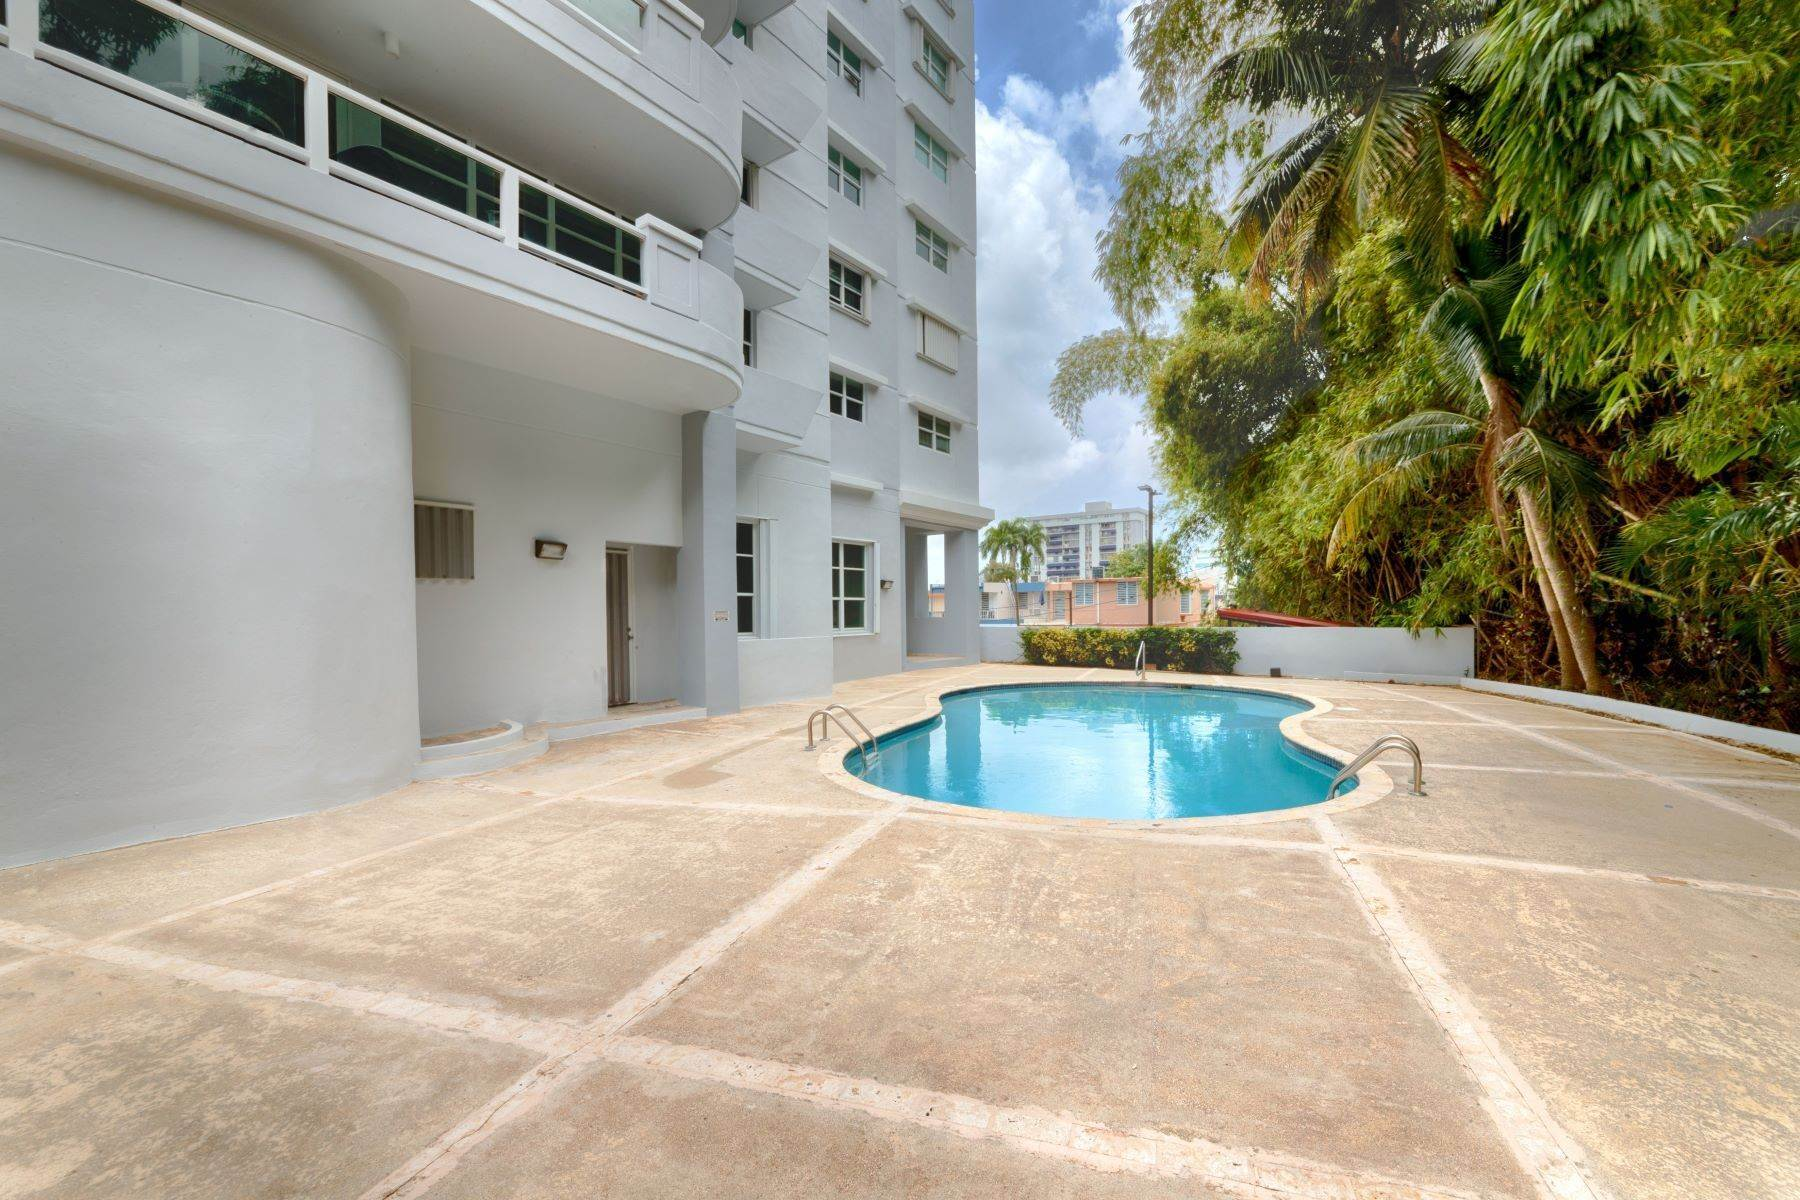 27. Condominiums for Sale at Stunning Duplex PH with Scenic Views in Portofino 5 Palm Circle St., Apt. 16 PH-A Guaynabo, 00969 Puerto Rico